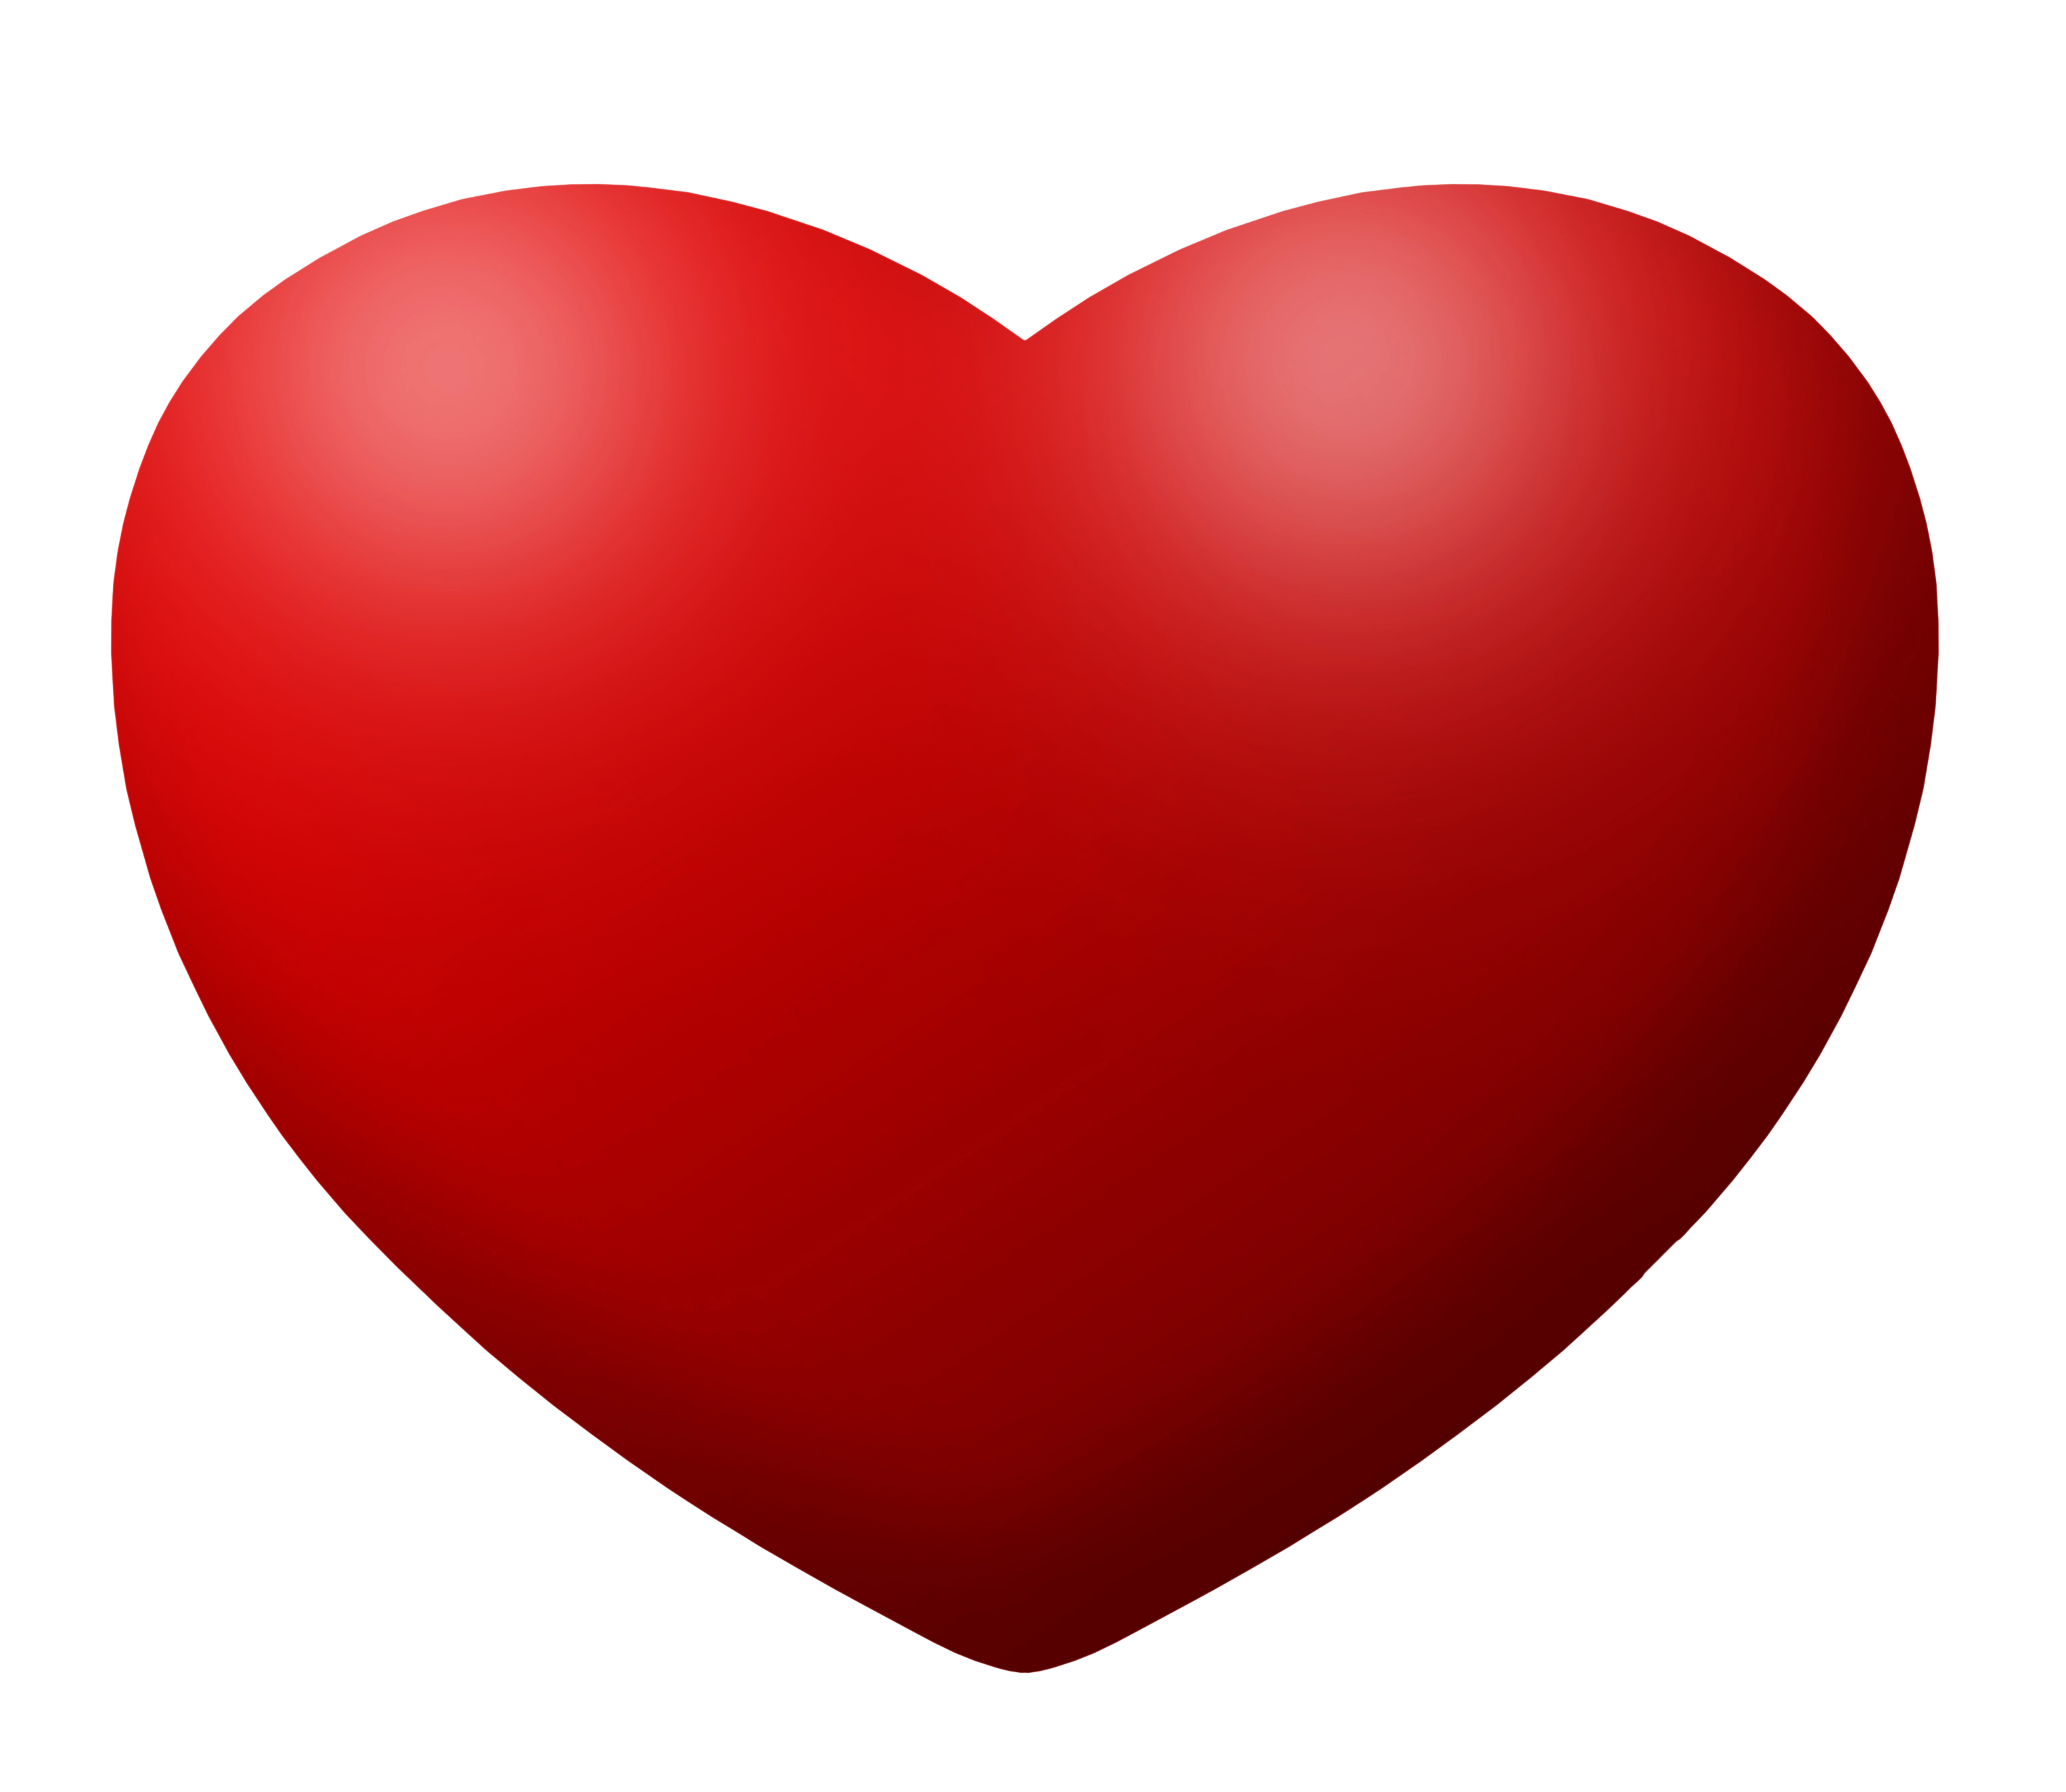 Heart png transparent background. Pictures free icons and